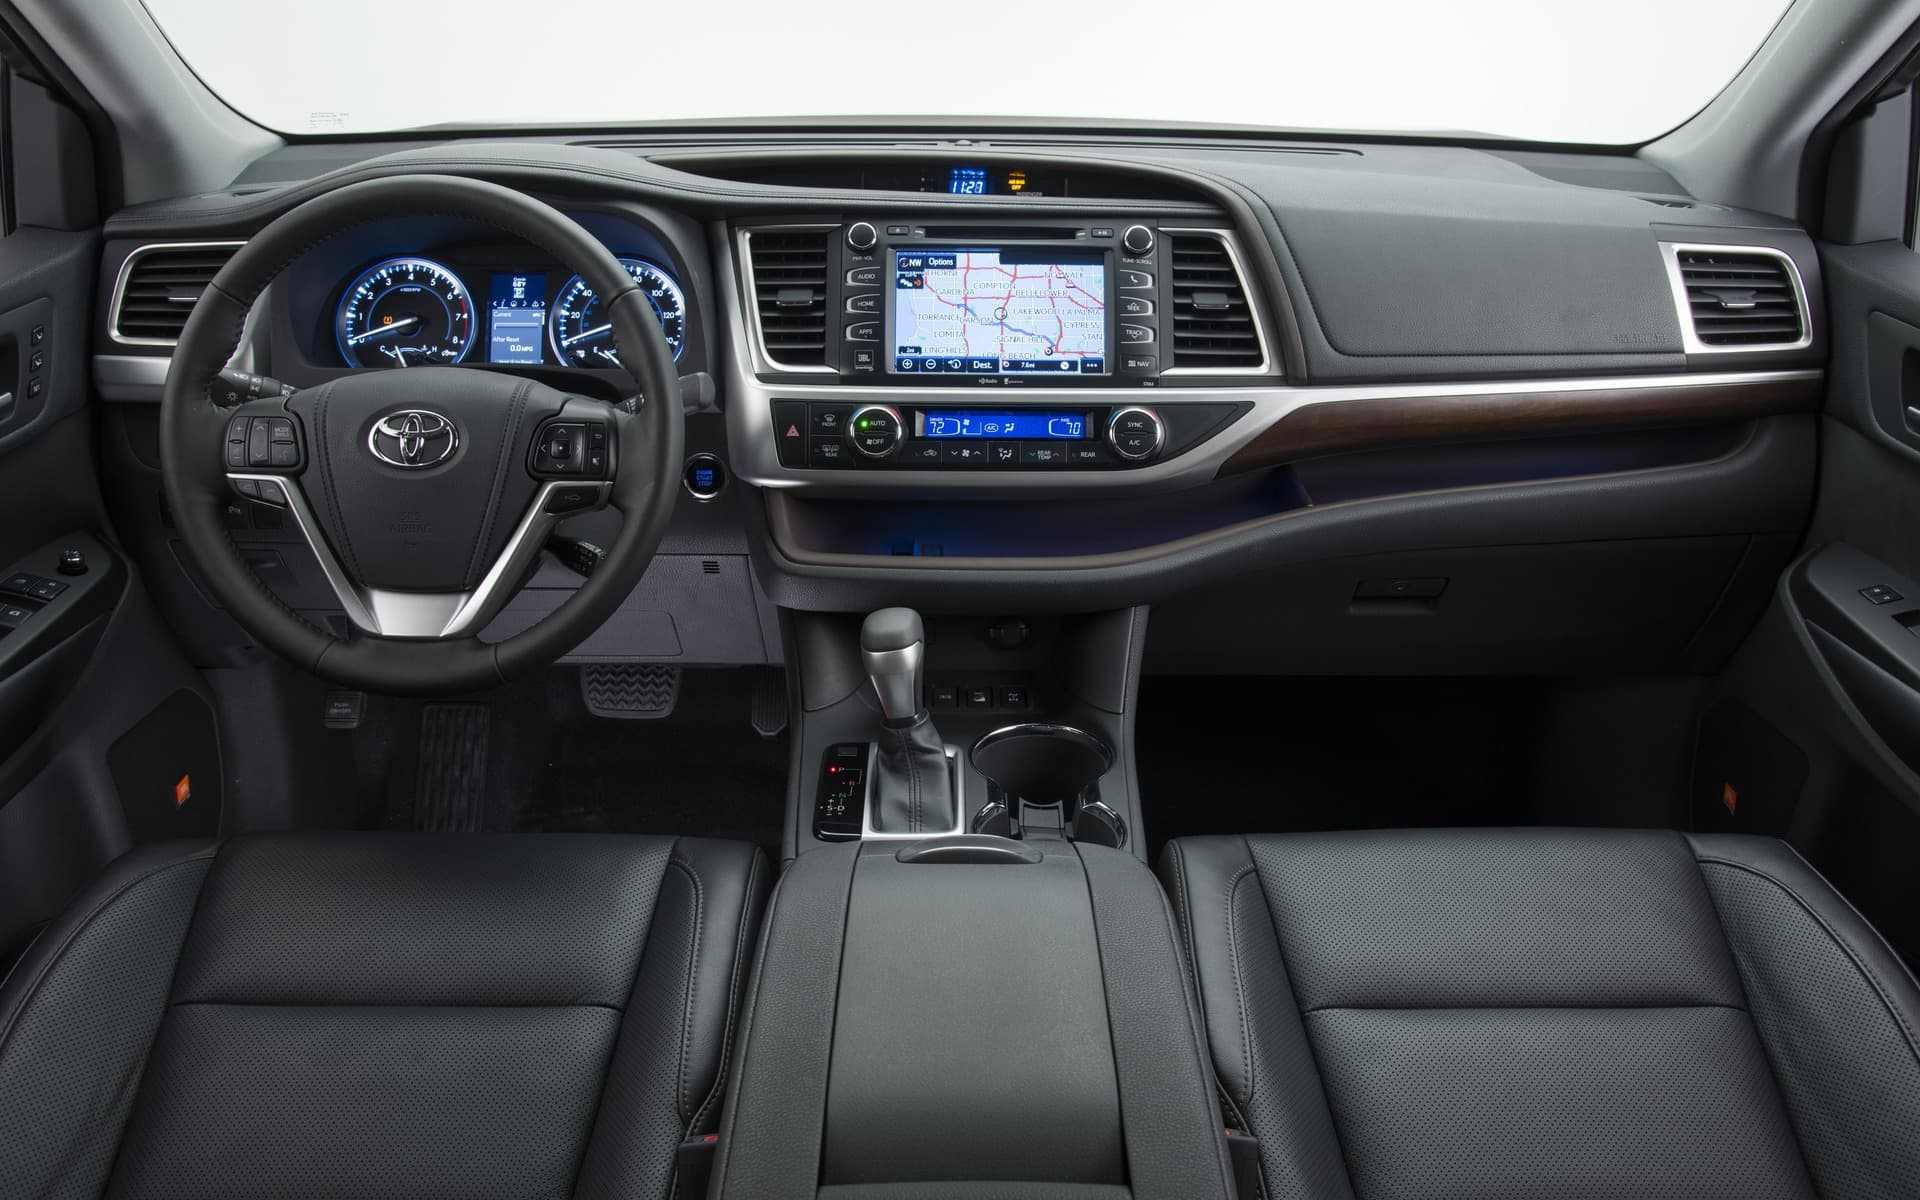 Picture of Toyota Highlander 2016 black leather interior